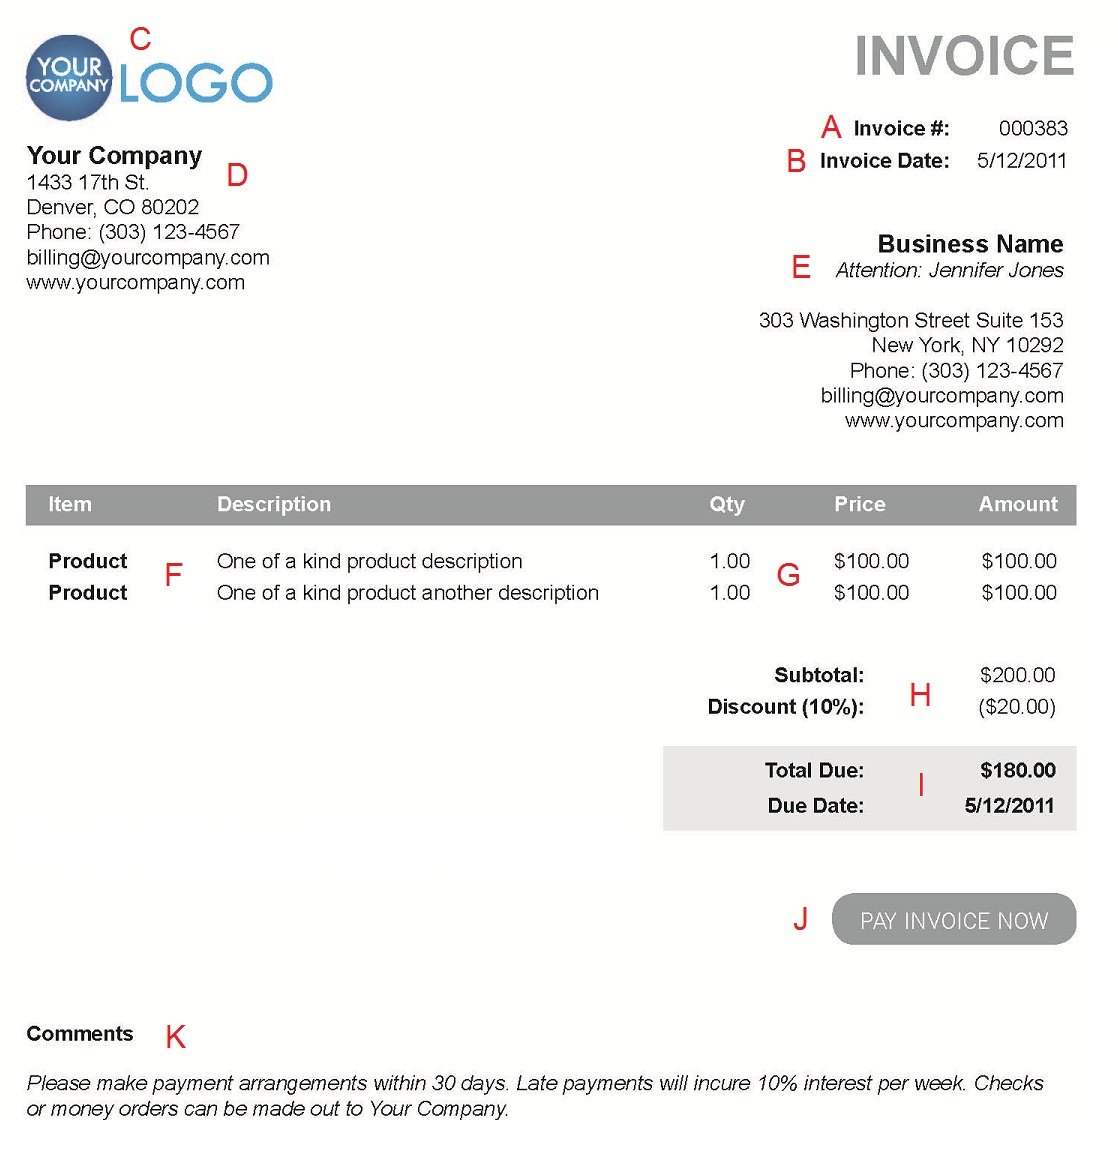 Sandiegolocksmithsus  Surprising The  Different Sections Of An Electronic Payment Invoice With Hot A  With Astonishing Chocolate Chip Cookie Receipt Also Receipt For Donations In Addition Receipt For Chicken Soup And Washington Flyer Receipt As Well As Keep Receipts For Taxes Additionally Receipt Maker Template From Paysimplecom With Sandiegolocksmithsus  Hot The  Different Sections Of An Electronic Payment Invoice With Astonishing A  And Surprising Chocolate Chip Cookie Receipt Also Receipt For Donations In Addition Receipt For Chicken Soup From Paysimplecom